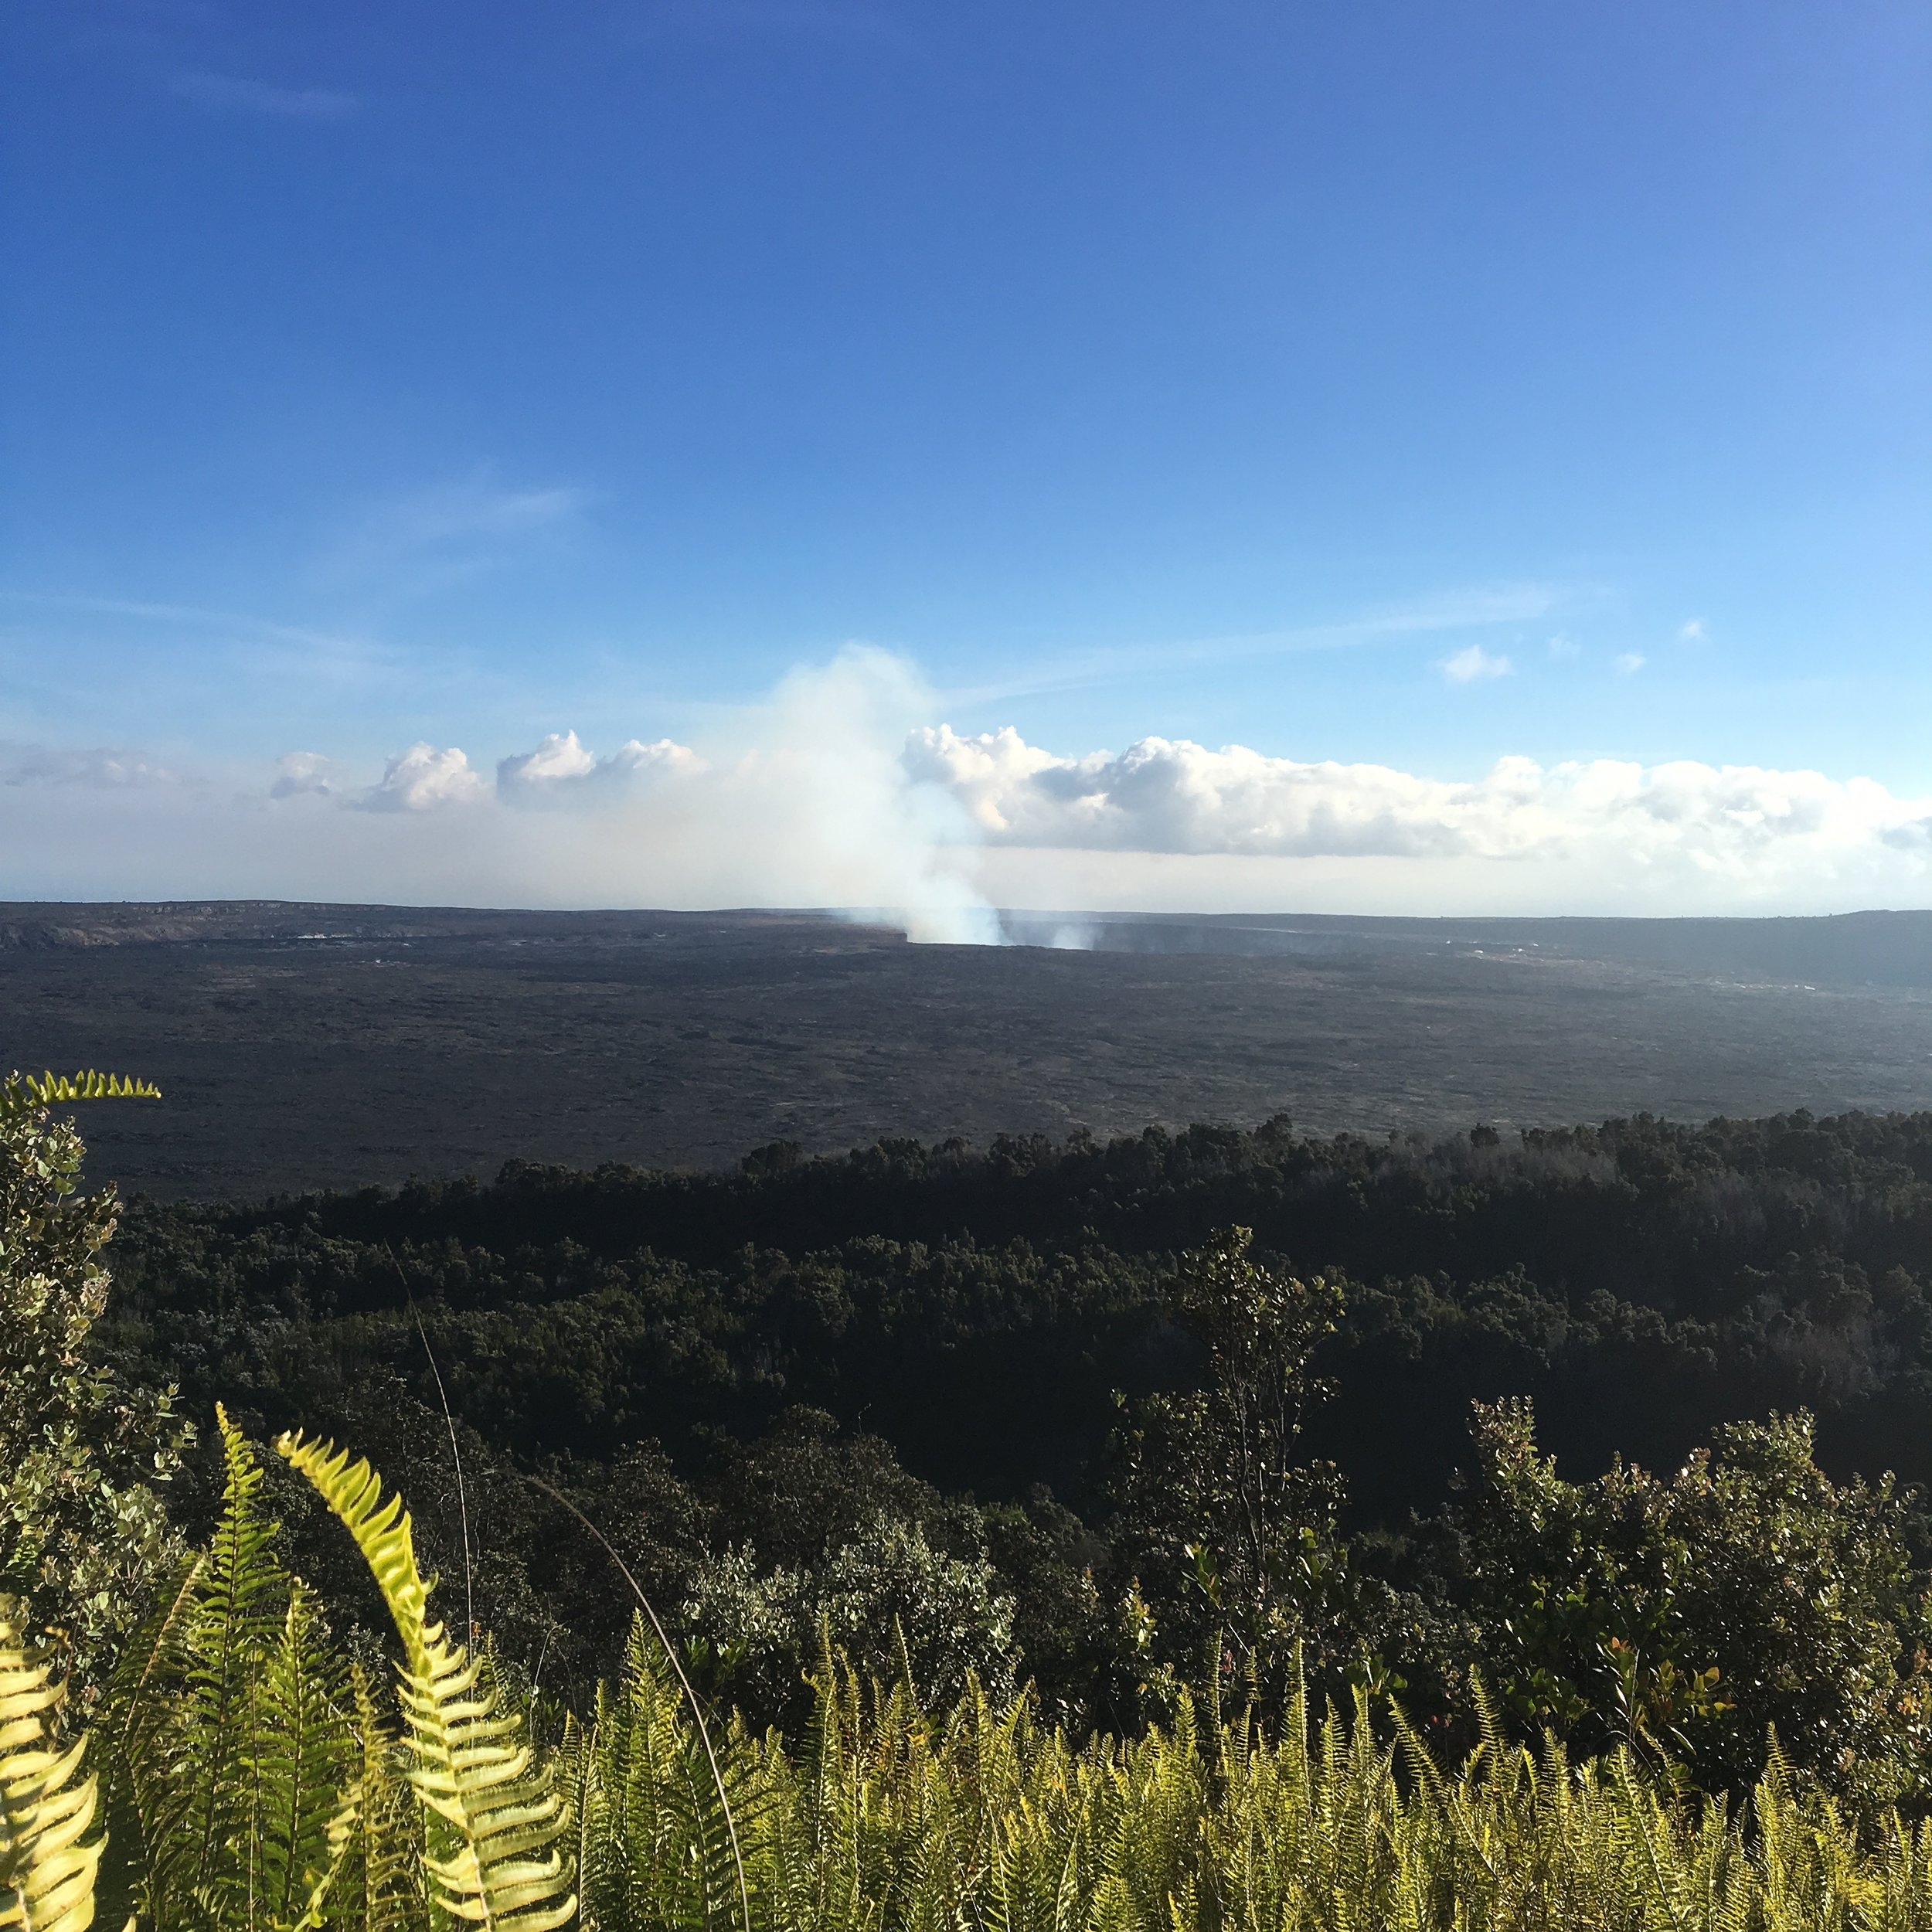 Even before the eruptions, it was possible to see the steam coming from the caldera from far away.